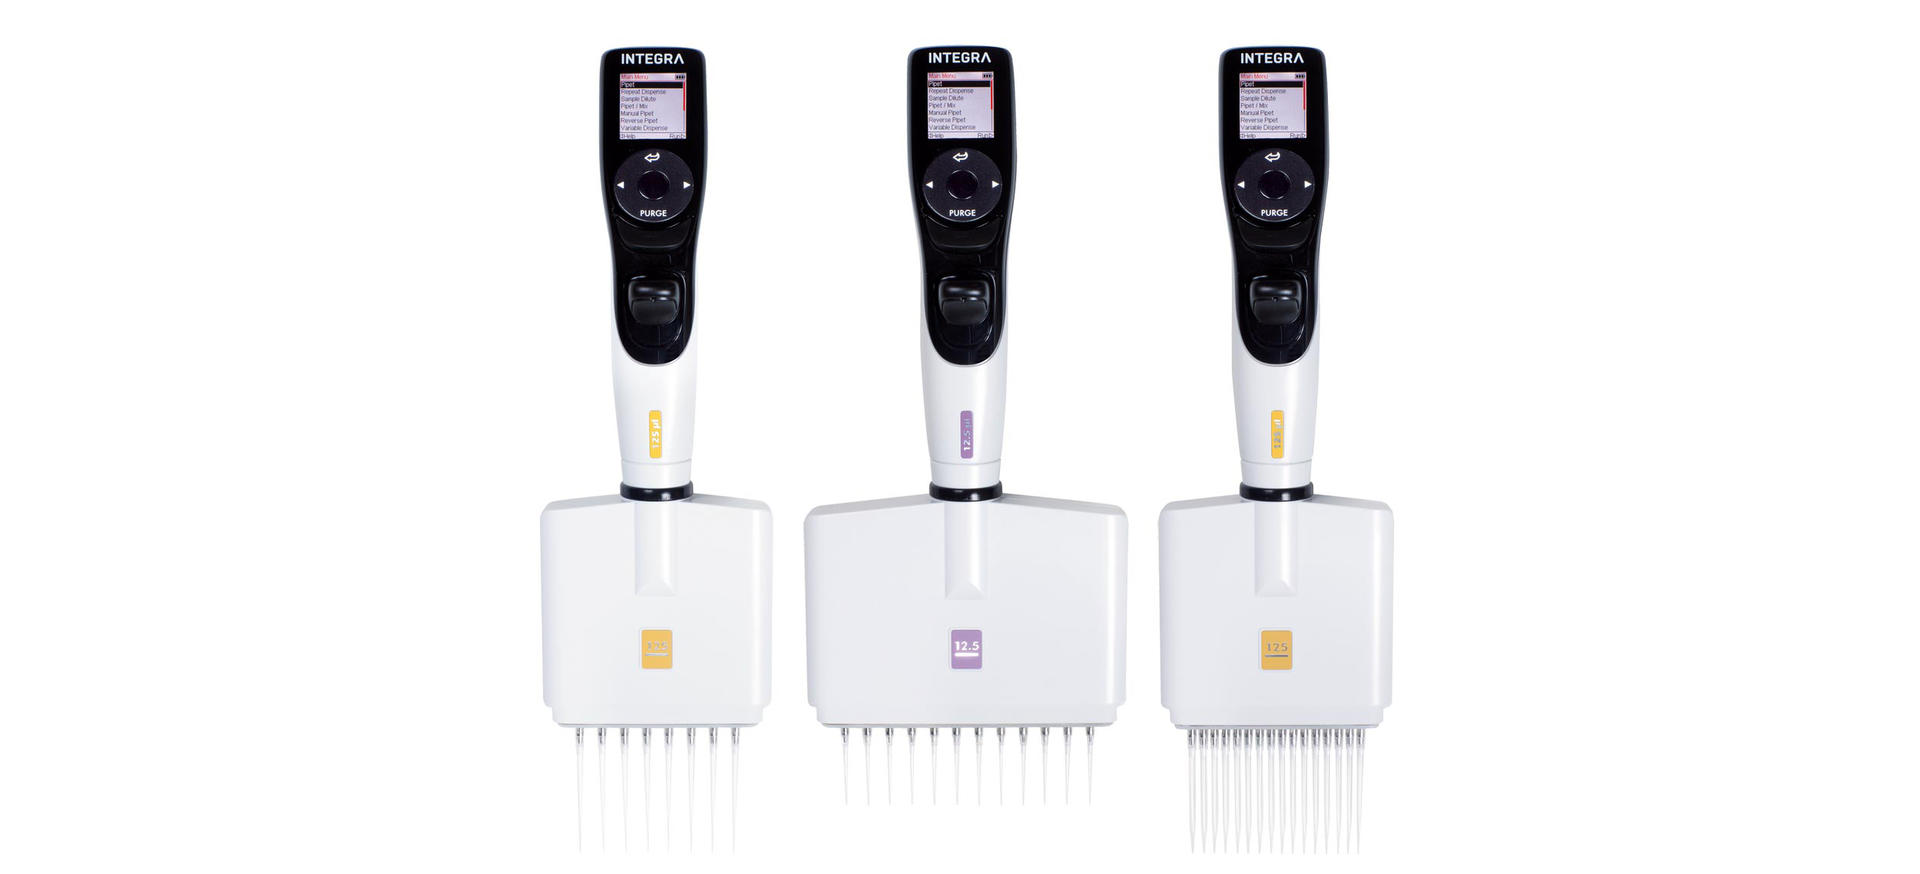 VIAFLO multichannel pipettes